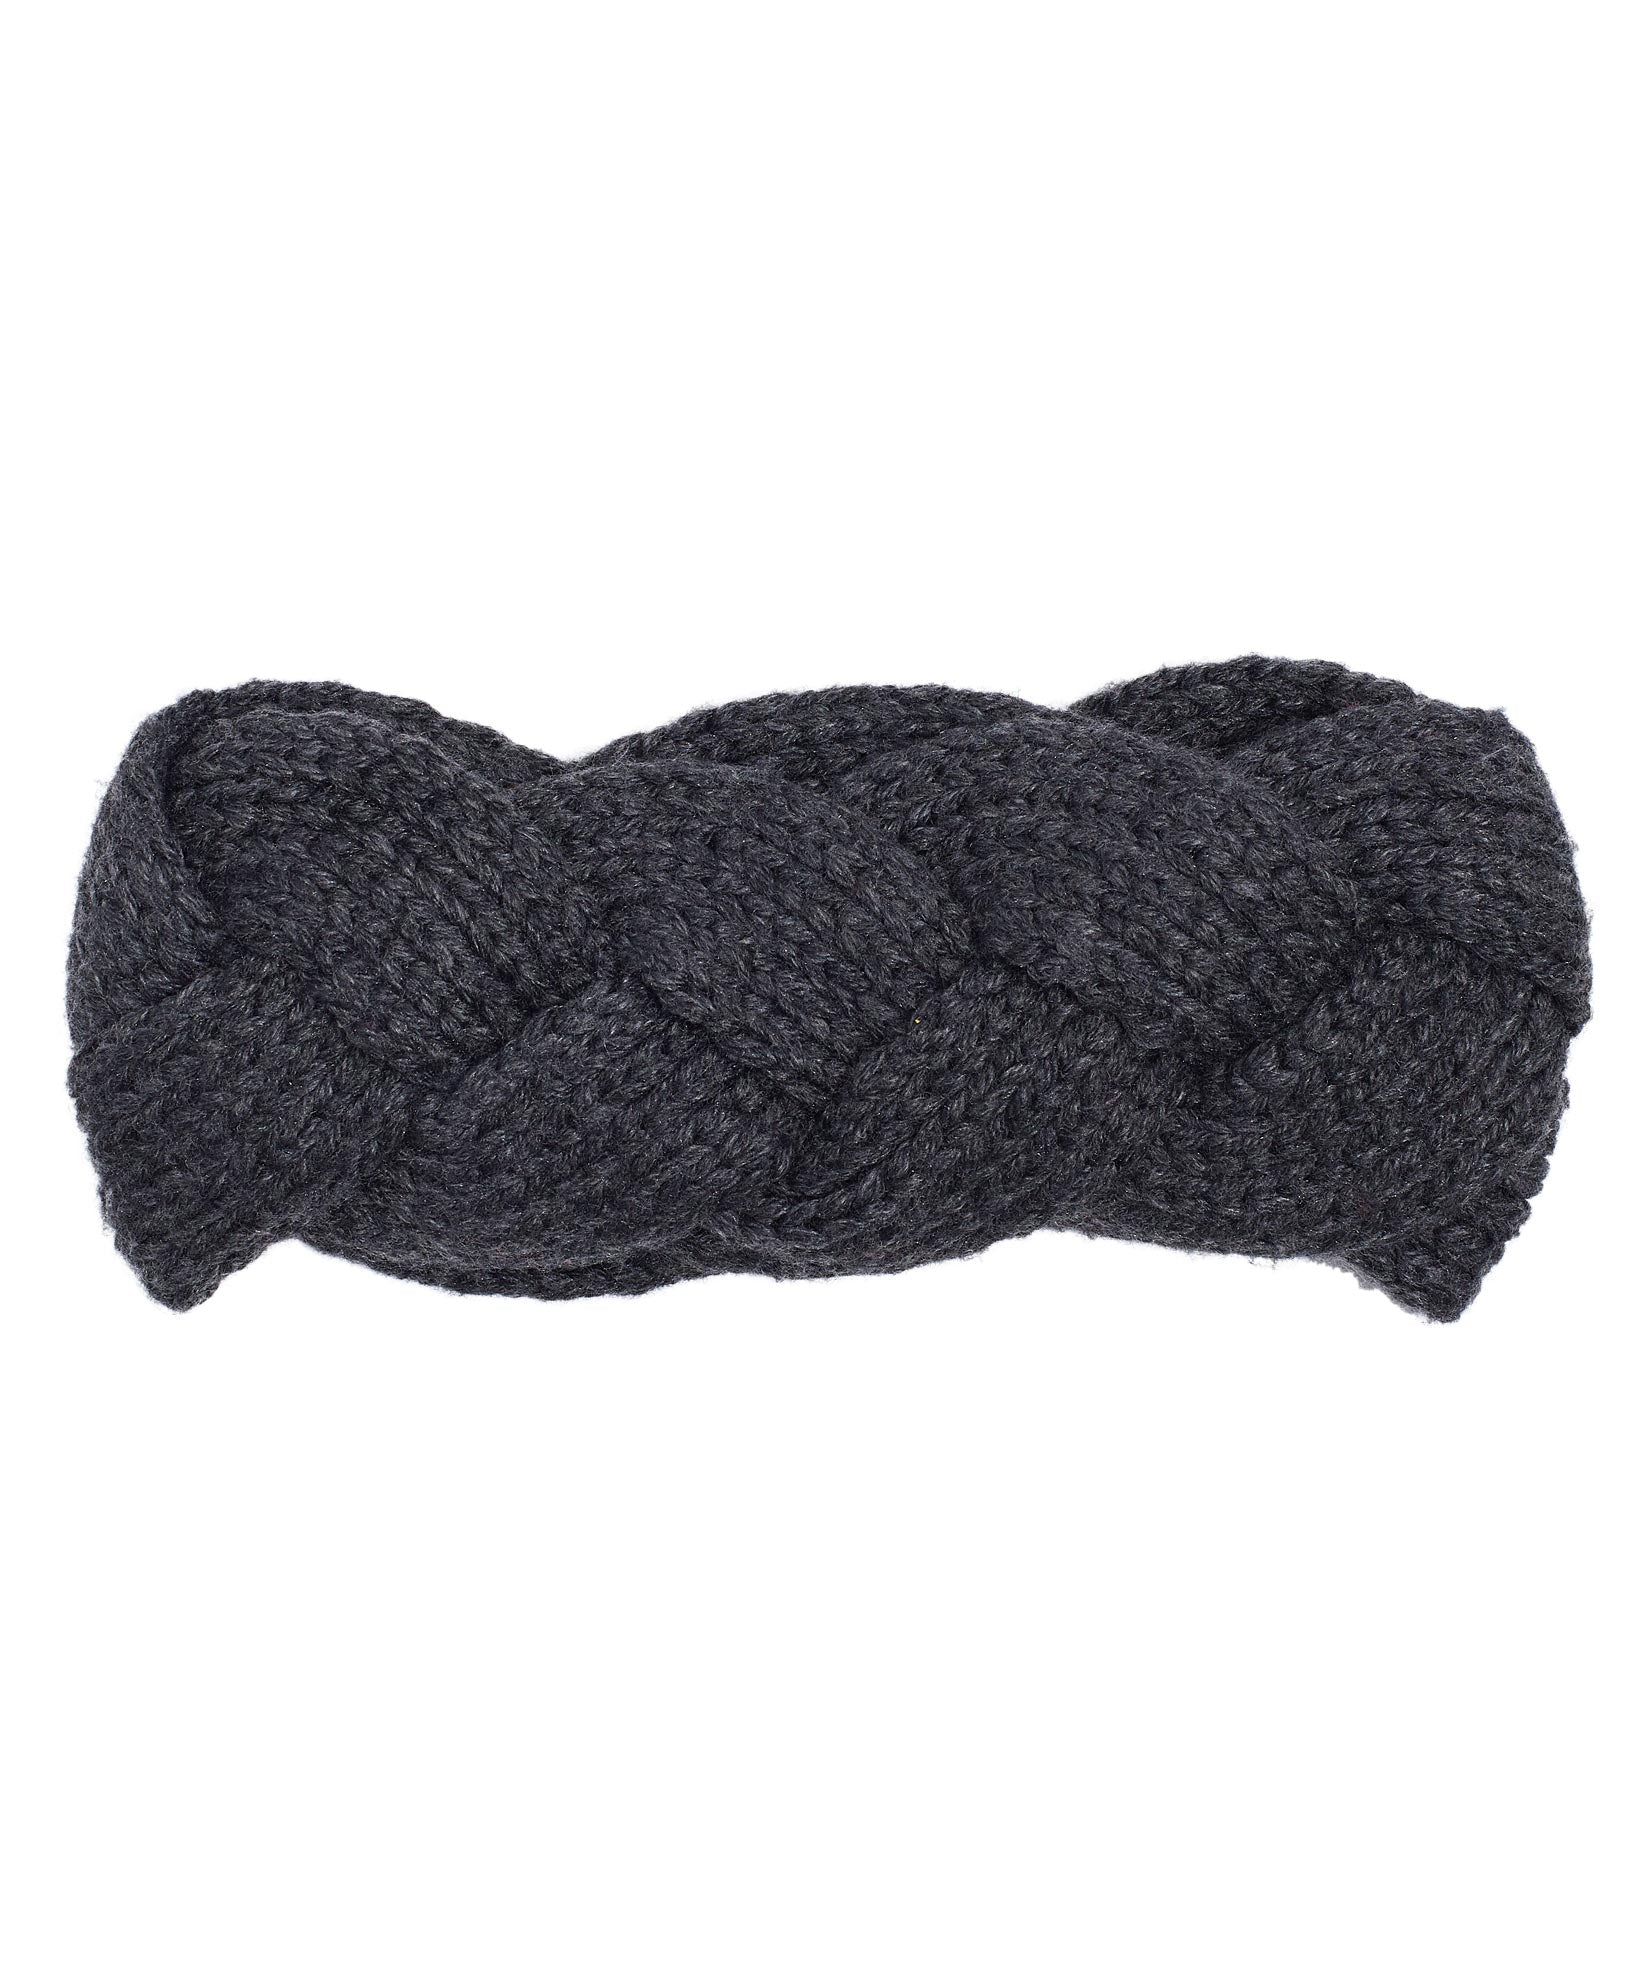 Charcoal - Recycled Cable Headband